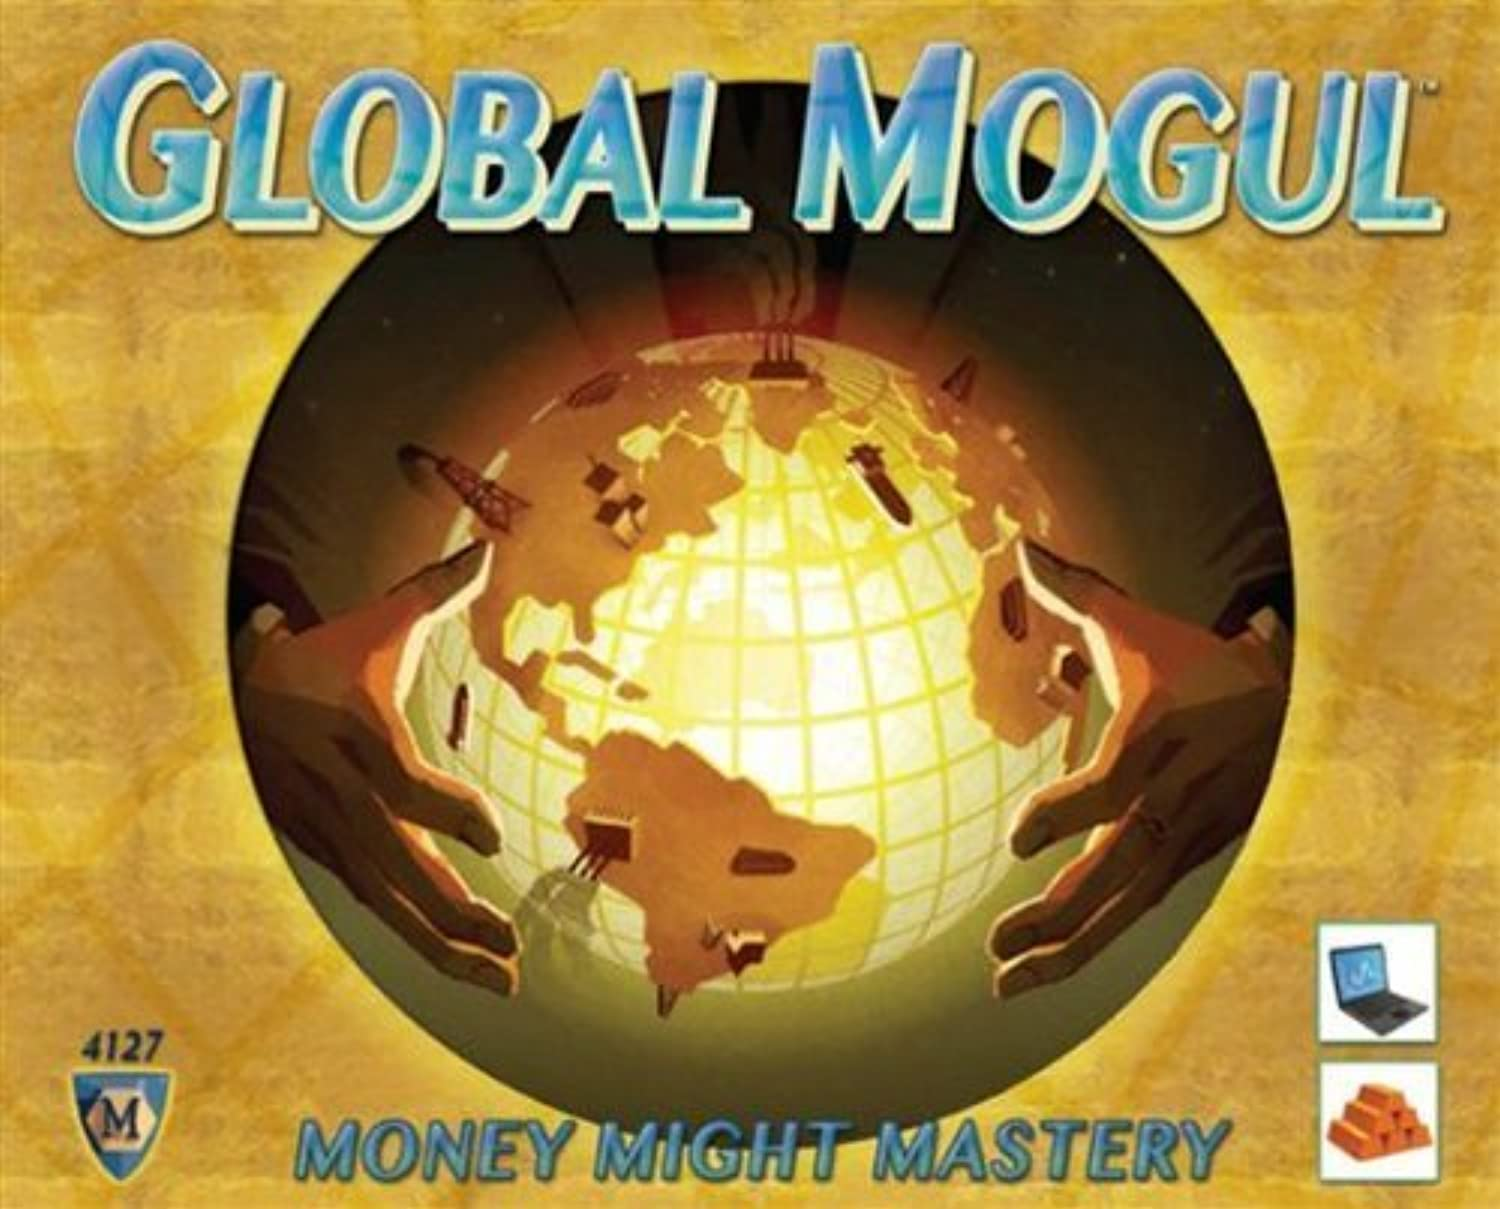 Mayfair Global Mogul Board Game by Games